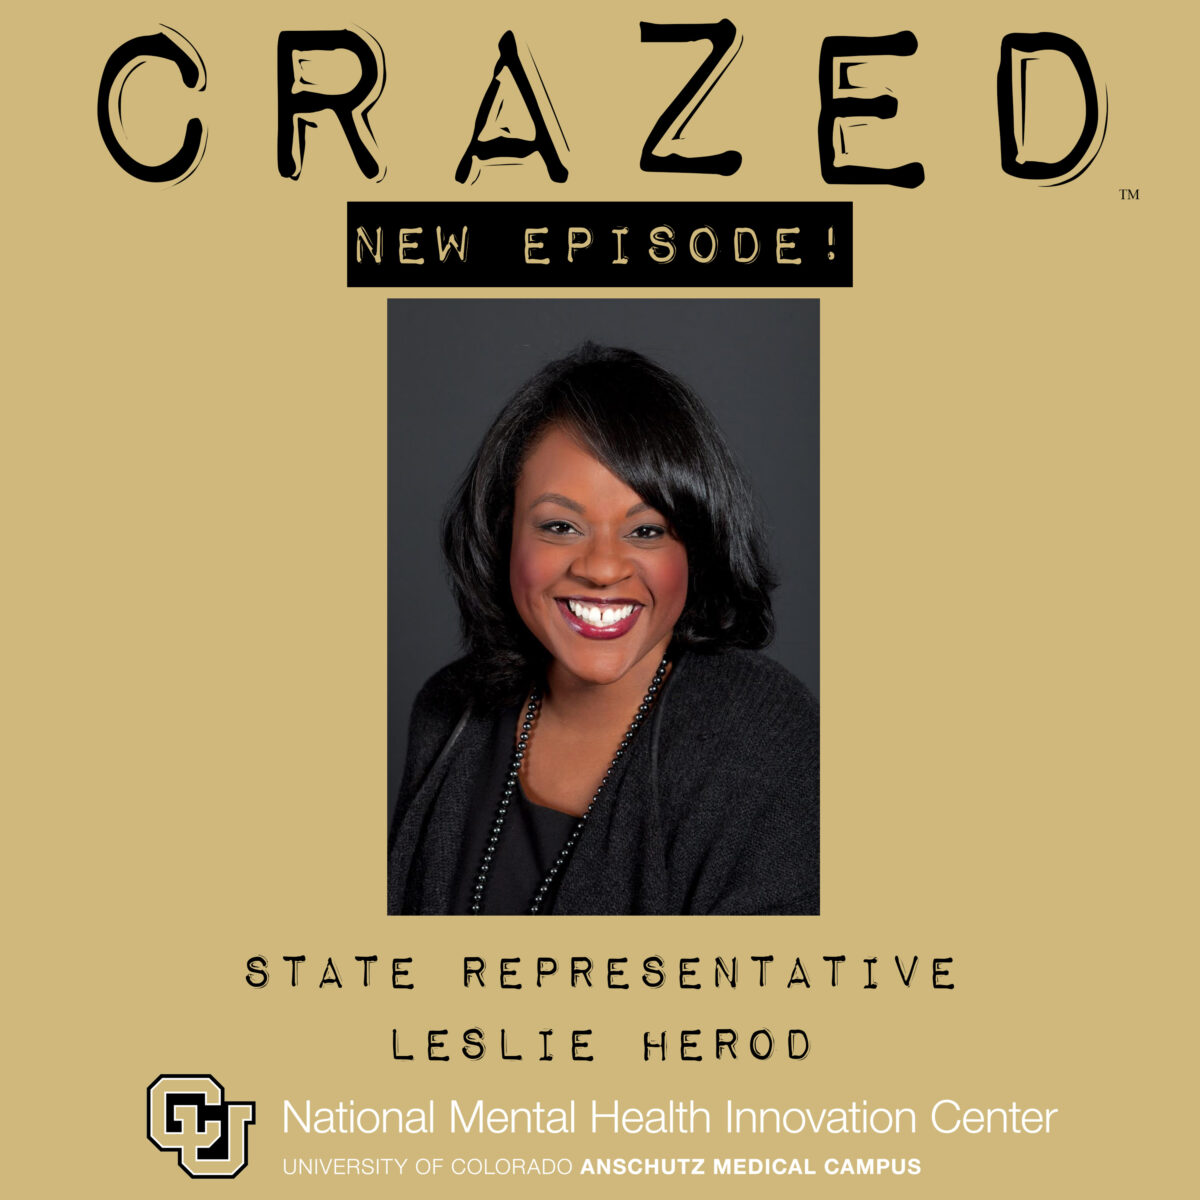 Podcast Episode with Leslie Herod